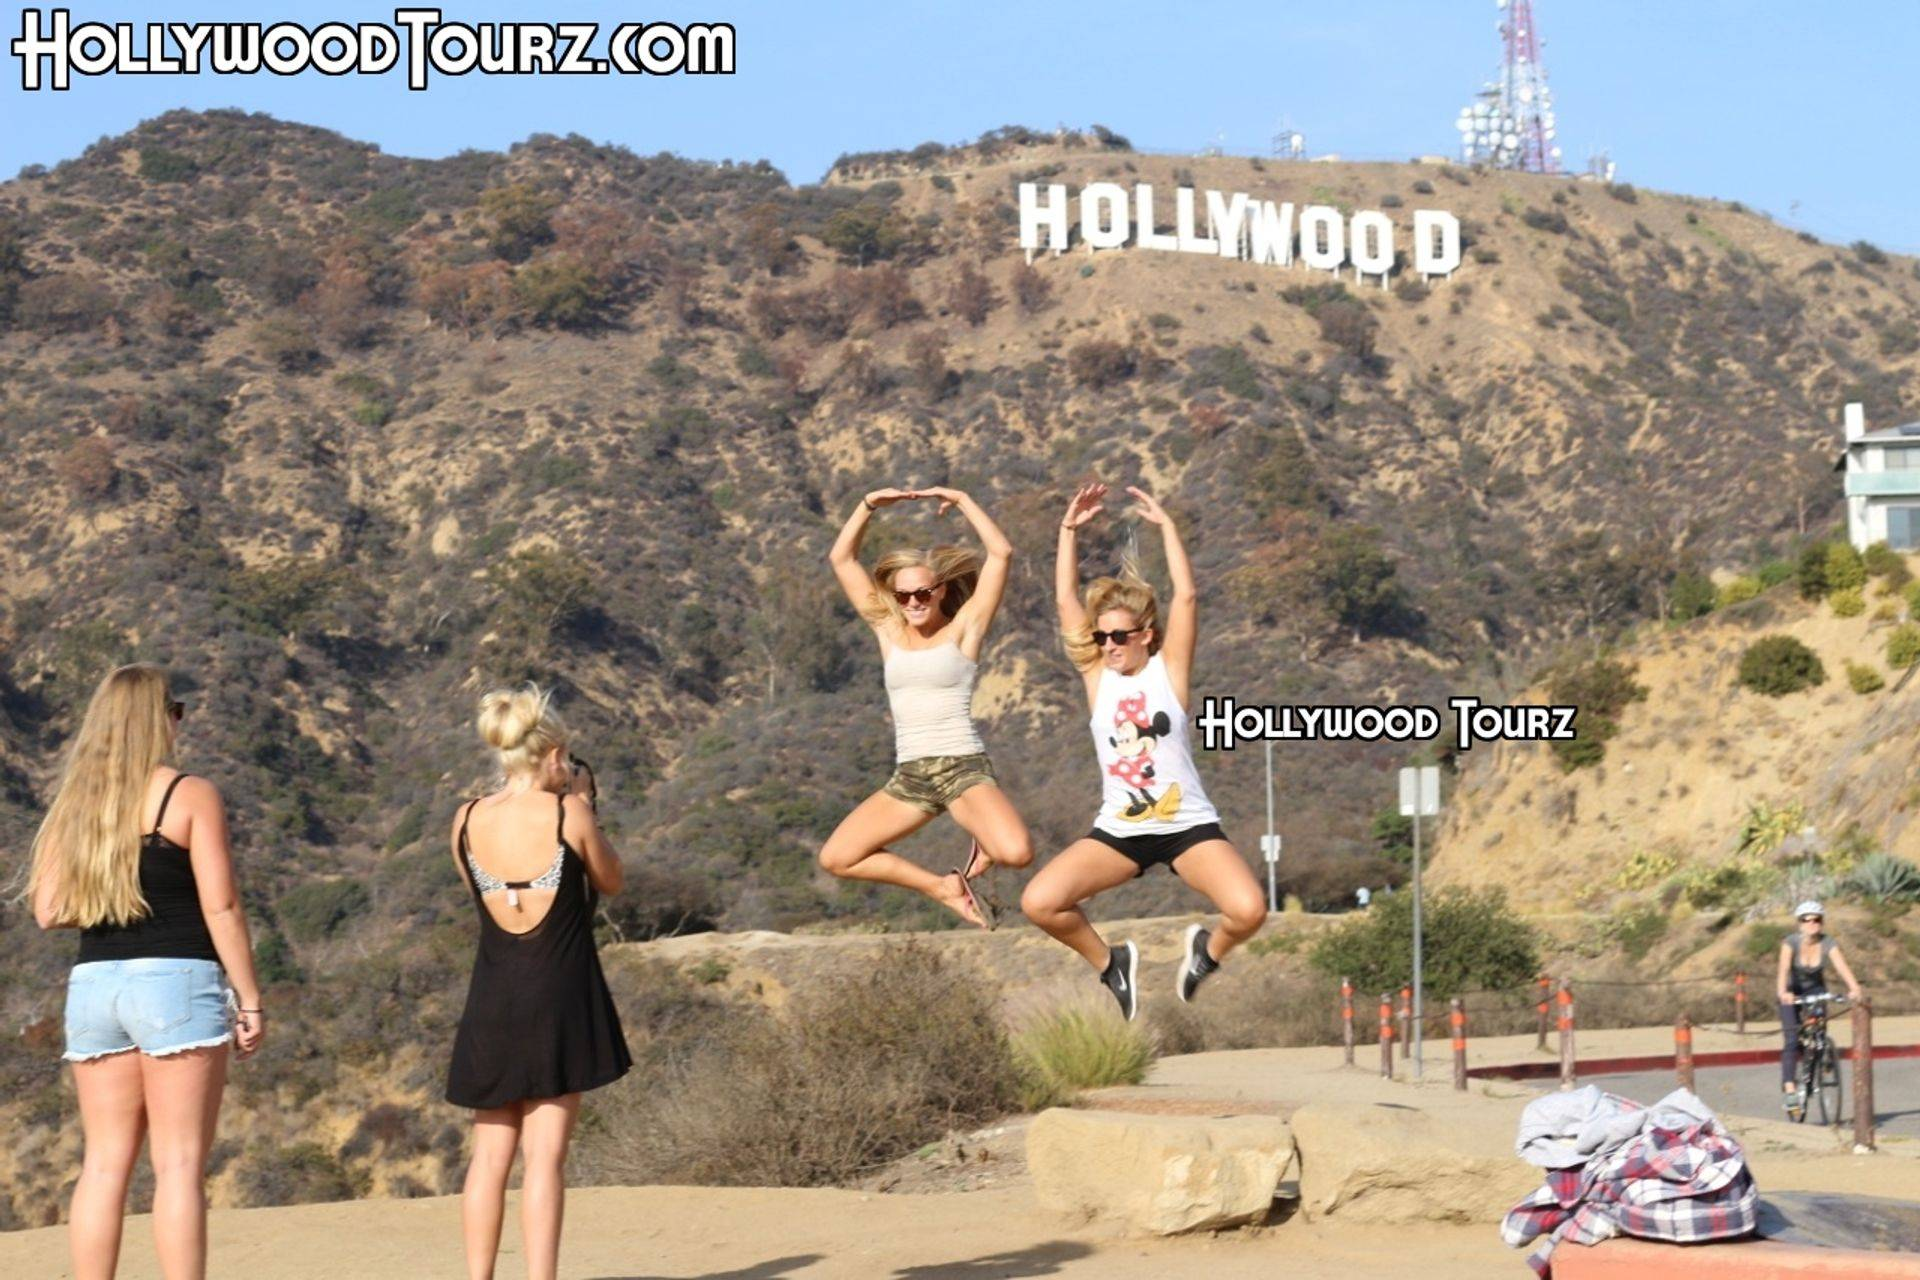 Hollywood Open Bus Sightseeing Tour of Los Angeles California Tourz